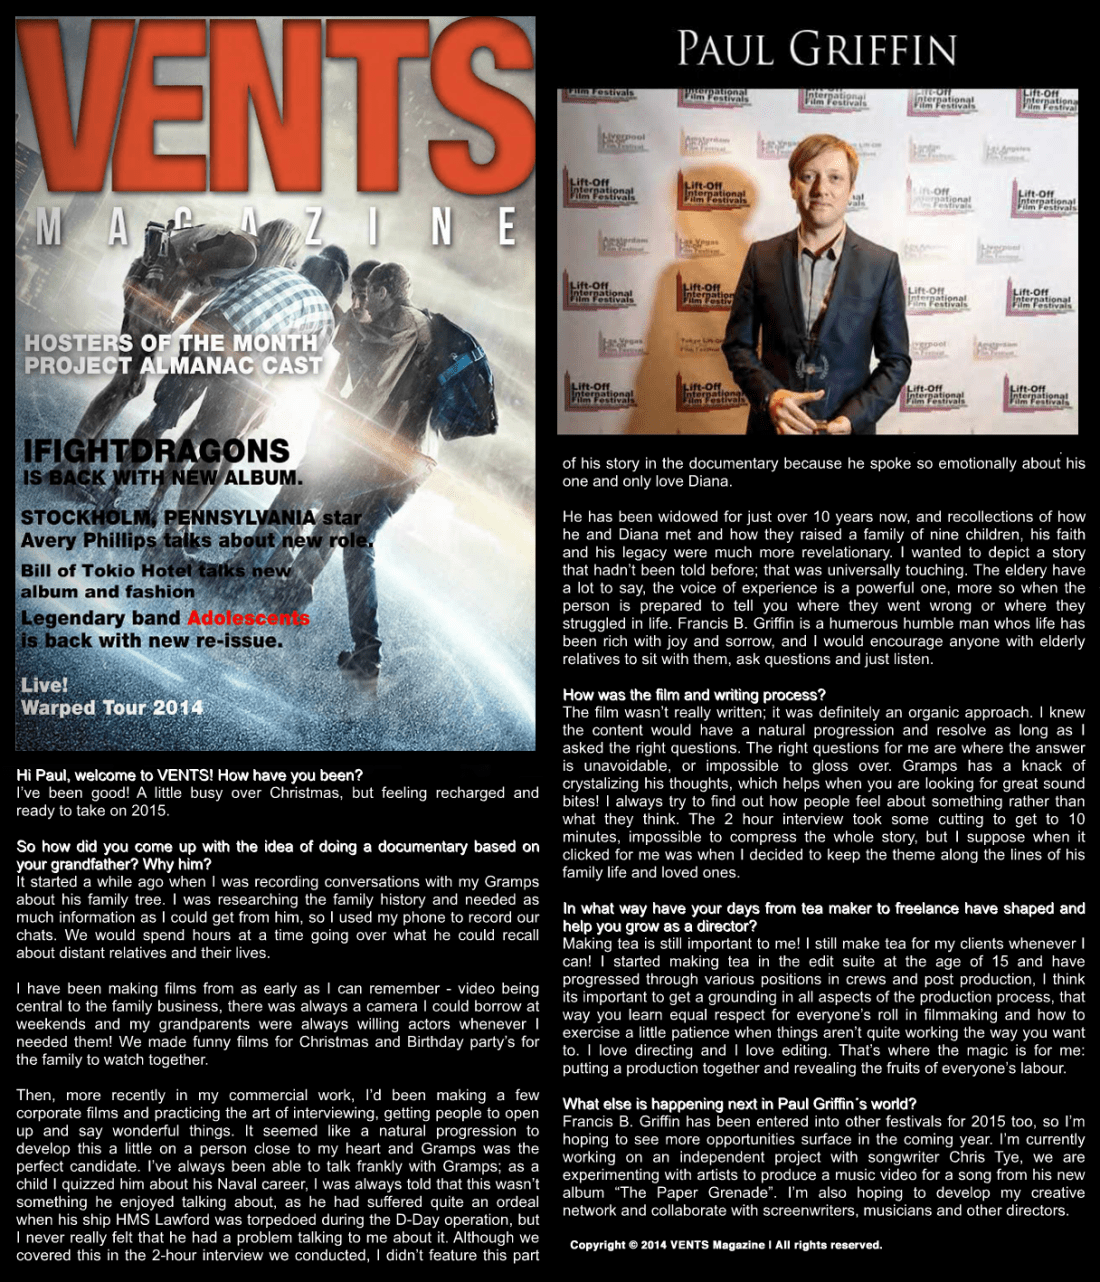 Paul Griffin Interview with Vents Magazine